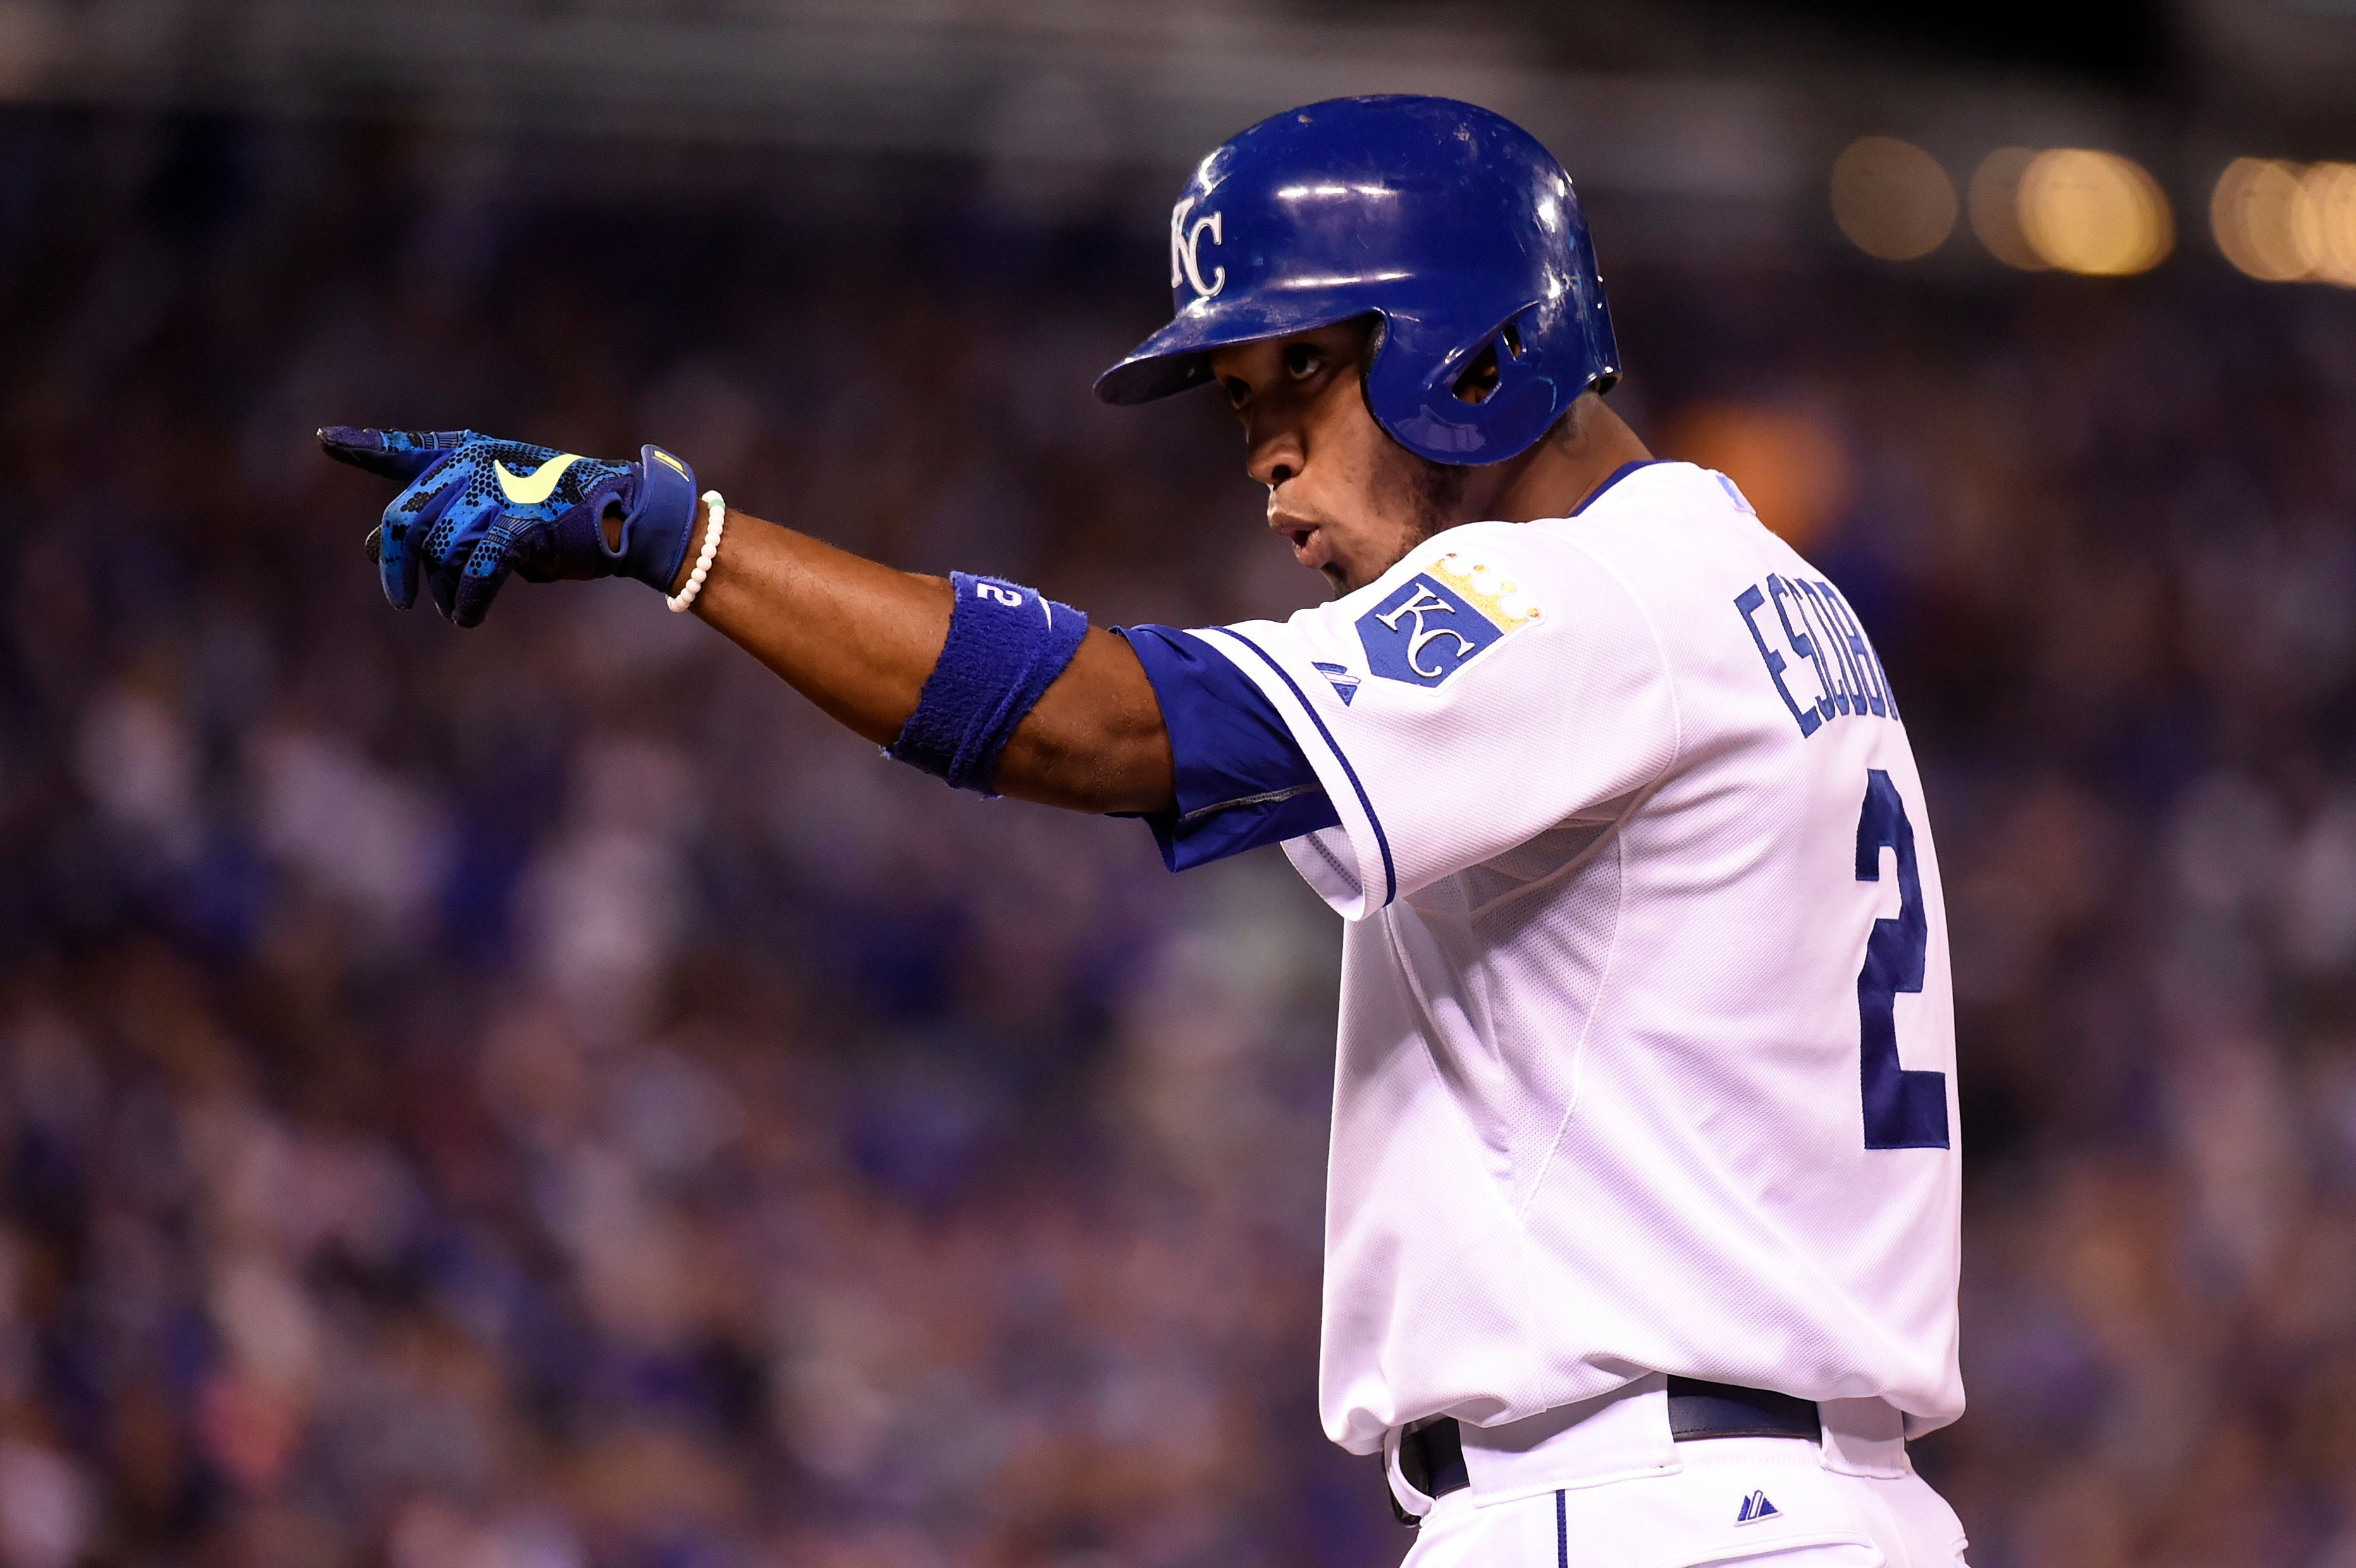 """<span class='image-component__caption' itemprop=""""caption"""">Alcides Escobar #2 of the Kansas City Royals reacts during Game 6 of the ALCS against the Toronto Blue Jays at Kauffman Stadium on Friday, October 23, 2015 in Kansas City Missouri.</span>"""